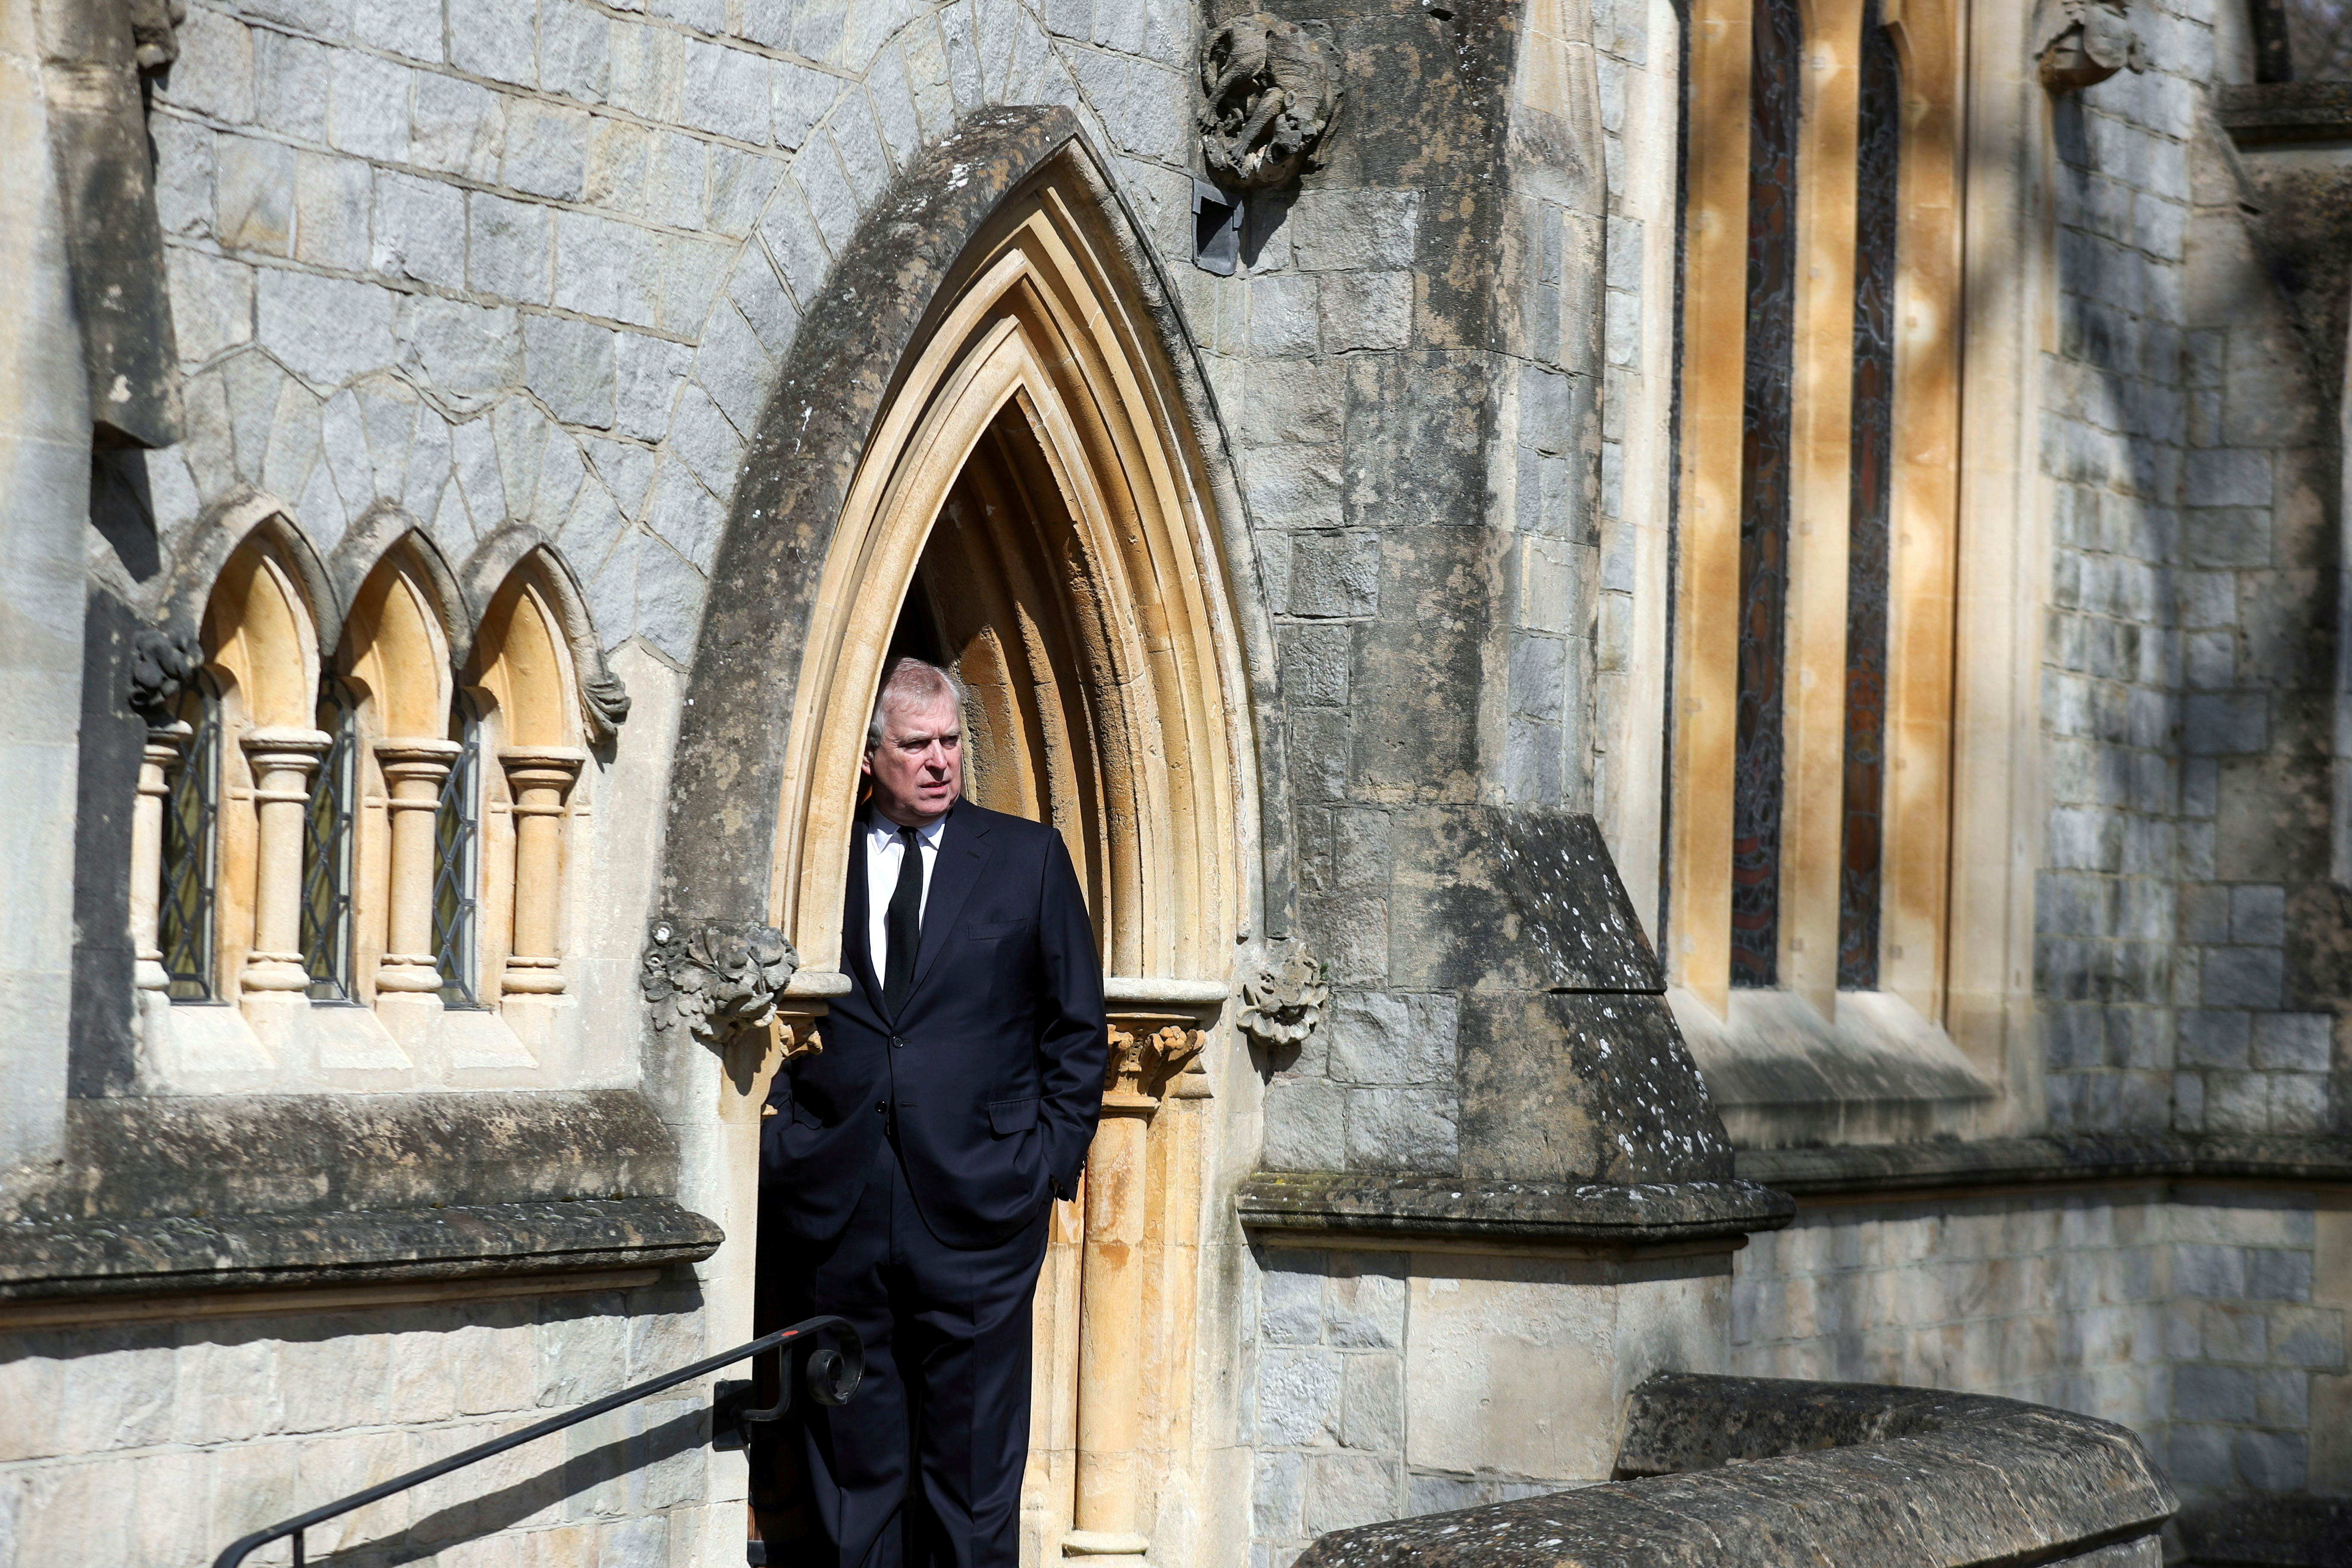 Britain's Prince Andrew attends Sunday service at the Royal Chapel of All Saints at Windsor Great Park, Britain following Friday's death of his father Prince Philip at age 99, April 11, 2021. Steve Parsons/PA Wire/Pool via REUTERS